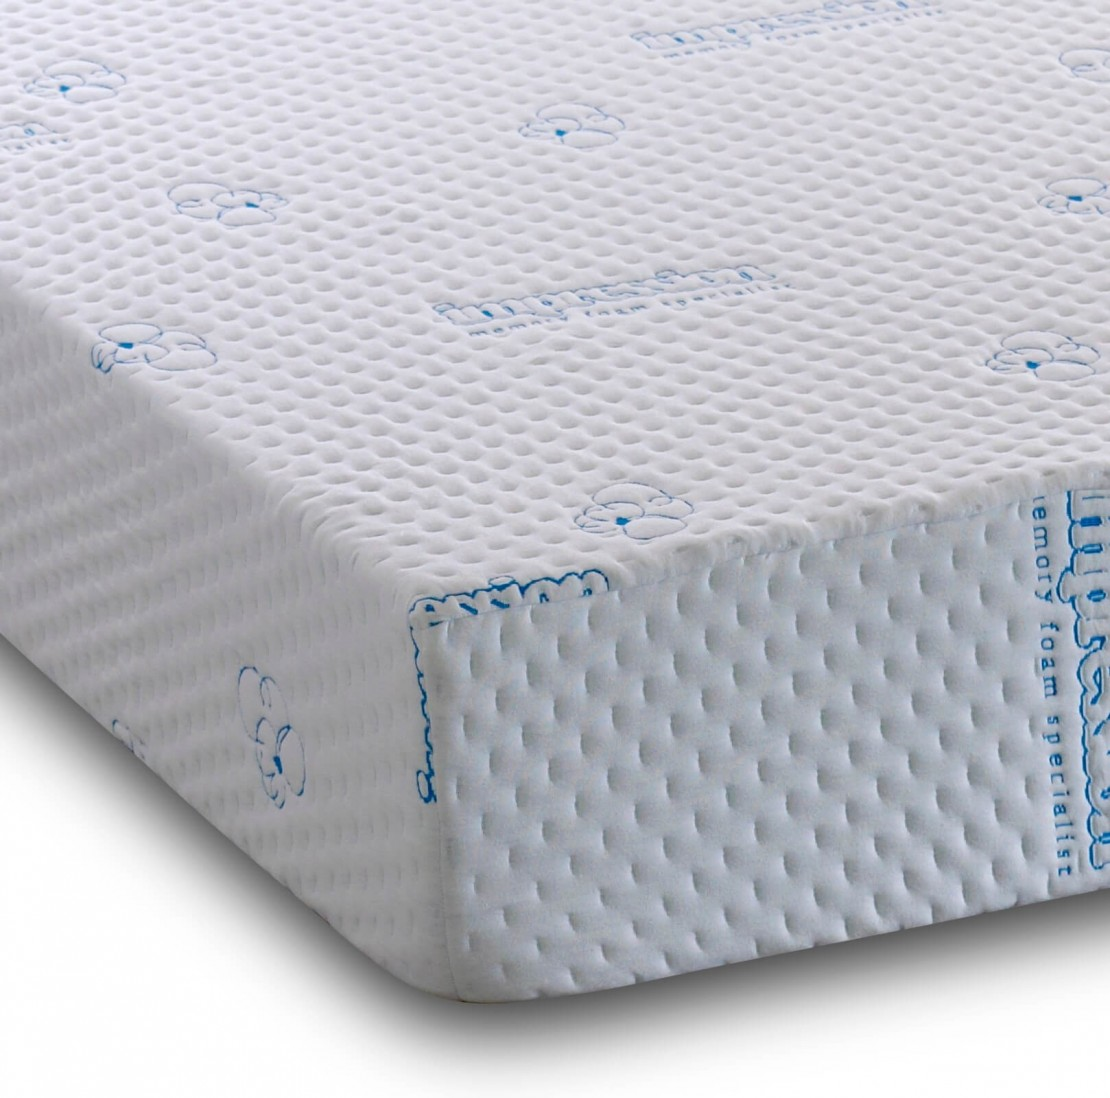 /_images/product-photos/visco-therapy-visco-4000-hd-memory-foam-firm-mattress-a.jpg